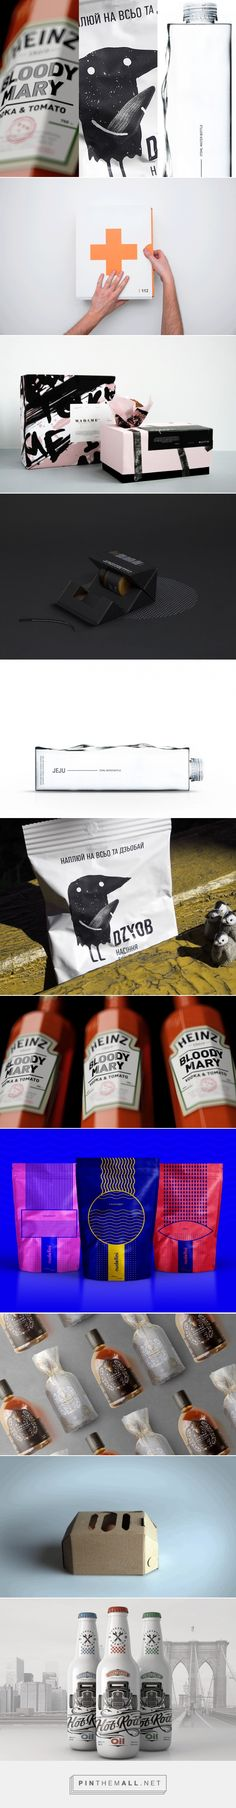 TOP10 Packaging Projects You Shouldn't Miss In August 2016 - http://www.packagingoftheworld.com/2016/09/packaging-you-shouldnt-miss-in-august.html